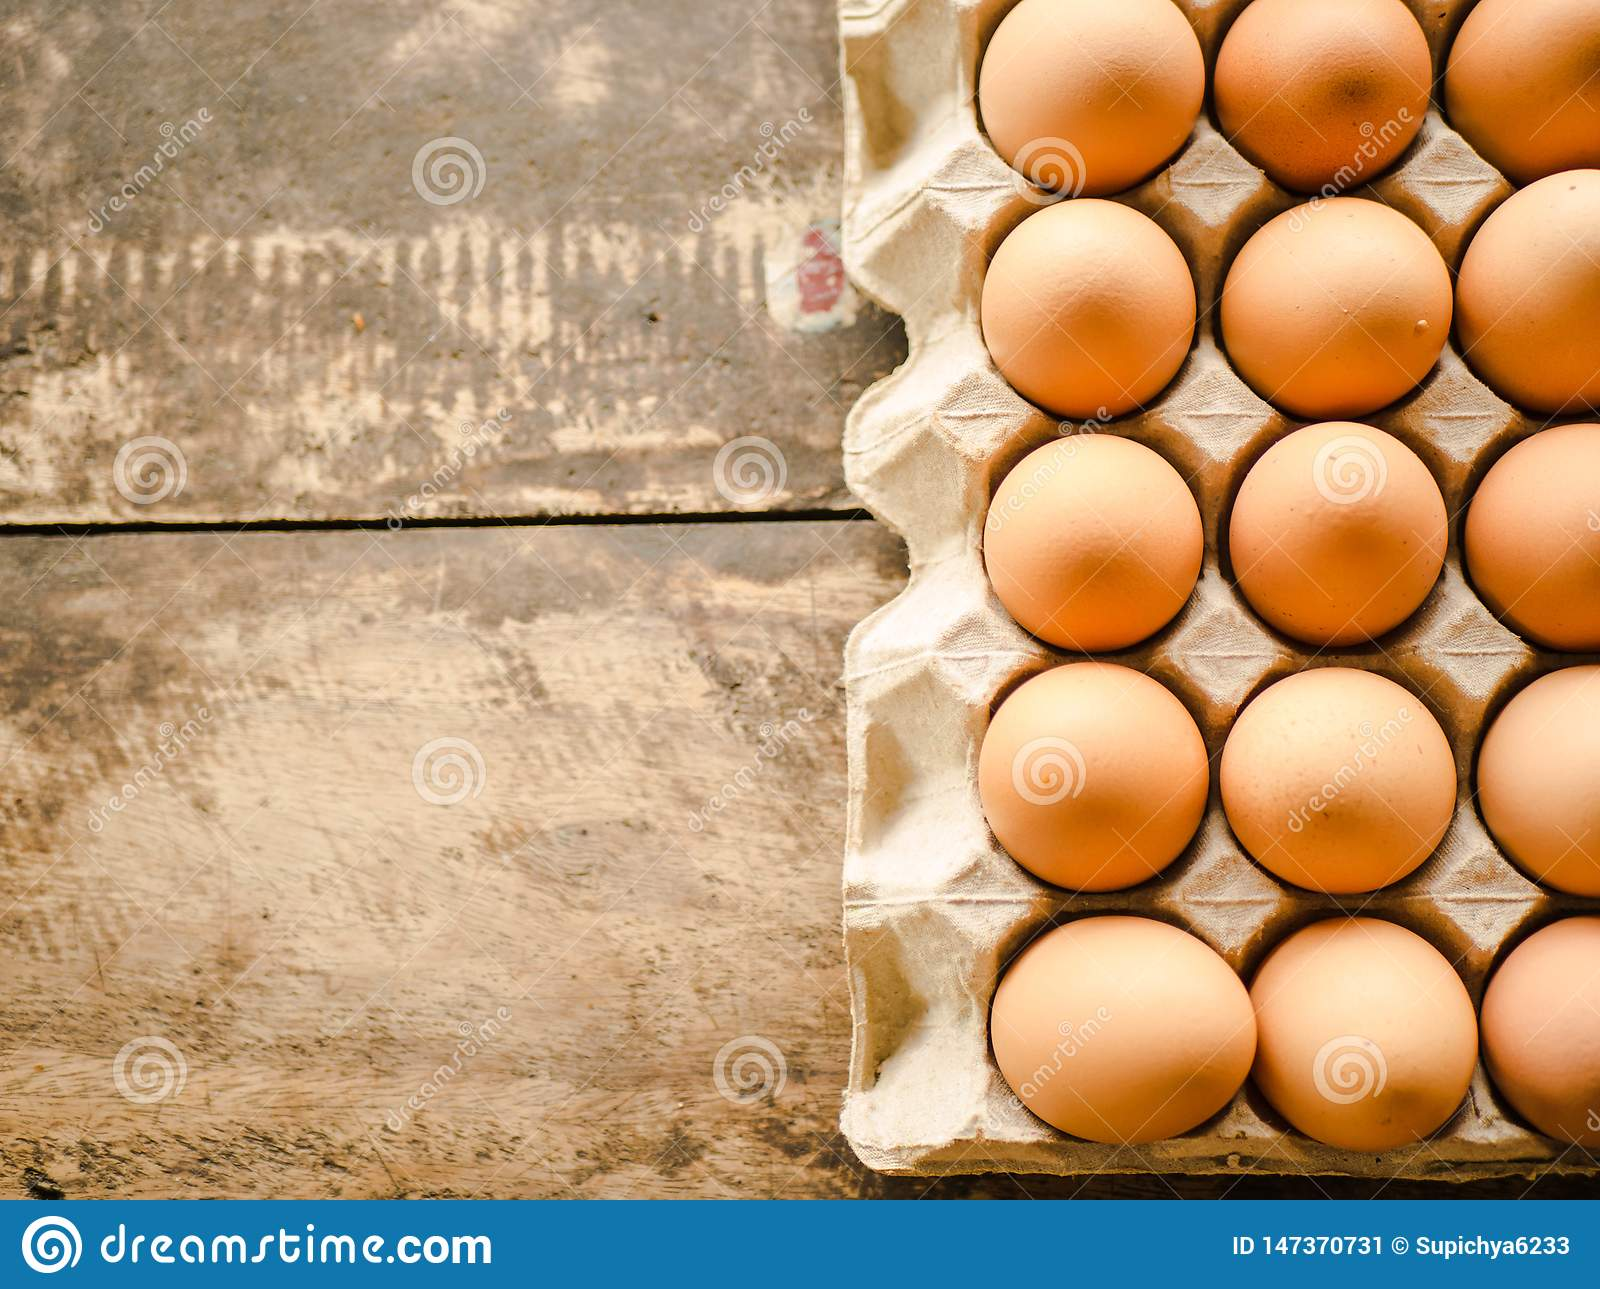 There are a lot of eggs.